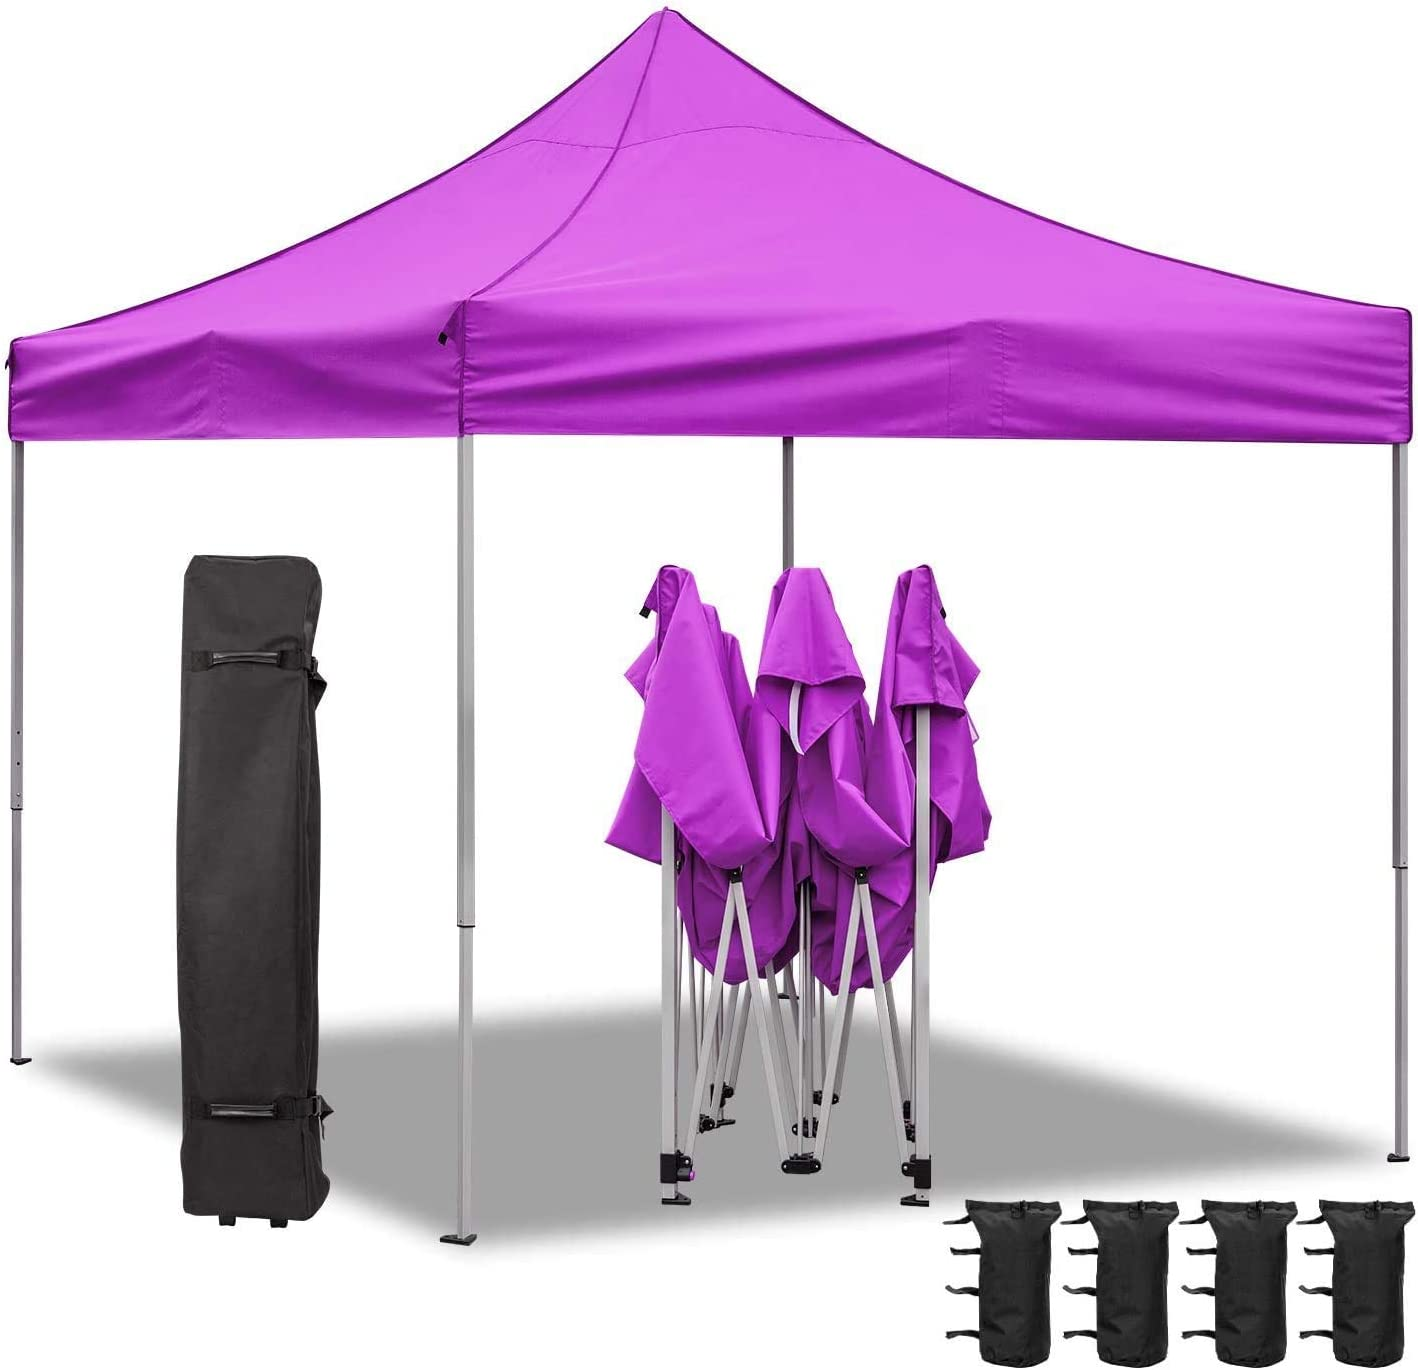 Homall Pop Up Canopy 10X10 FT Ez Up Canopy Tent Commercial Instant Shelter Patio Sun Shade Canopies with Roller Bag, 4 Canopy Sand Bags Purple